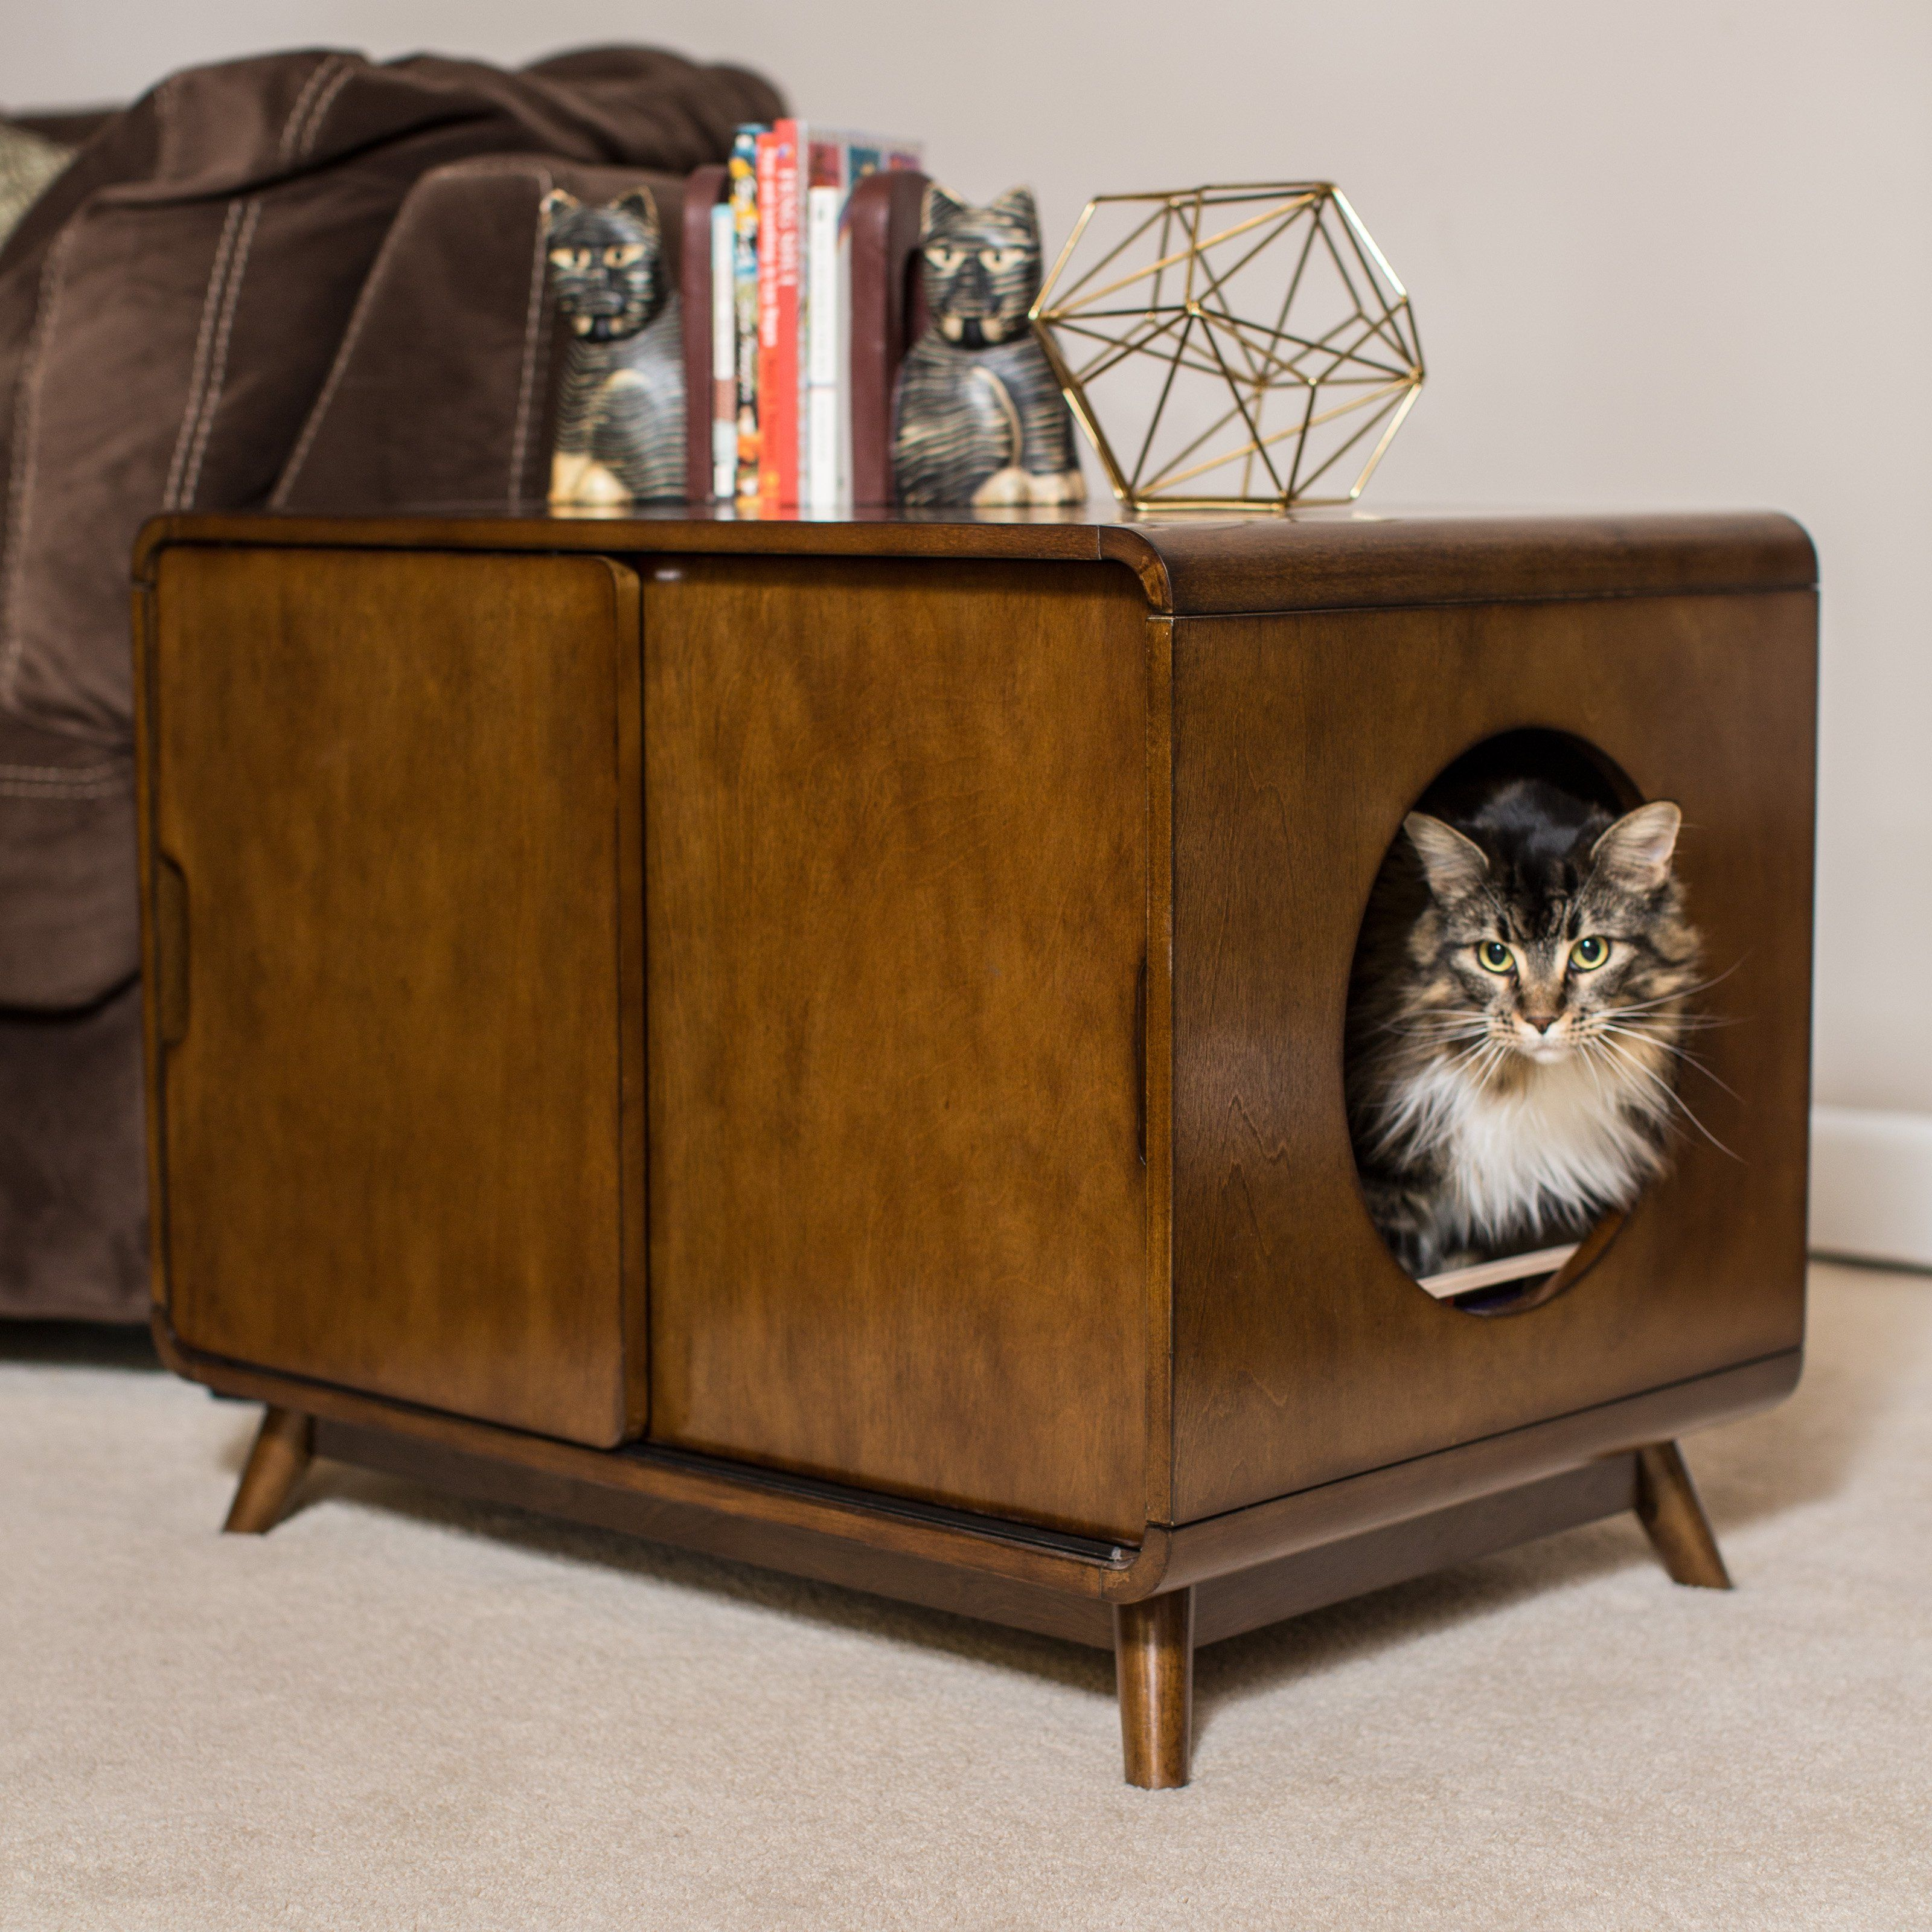 Boomer & Carter MidCentury Modern Cat Litter Box